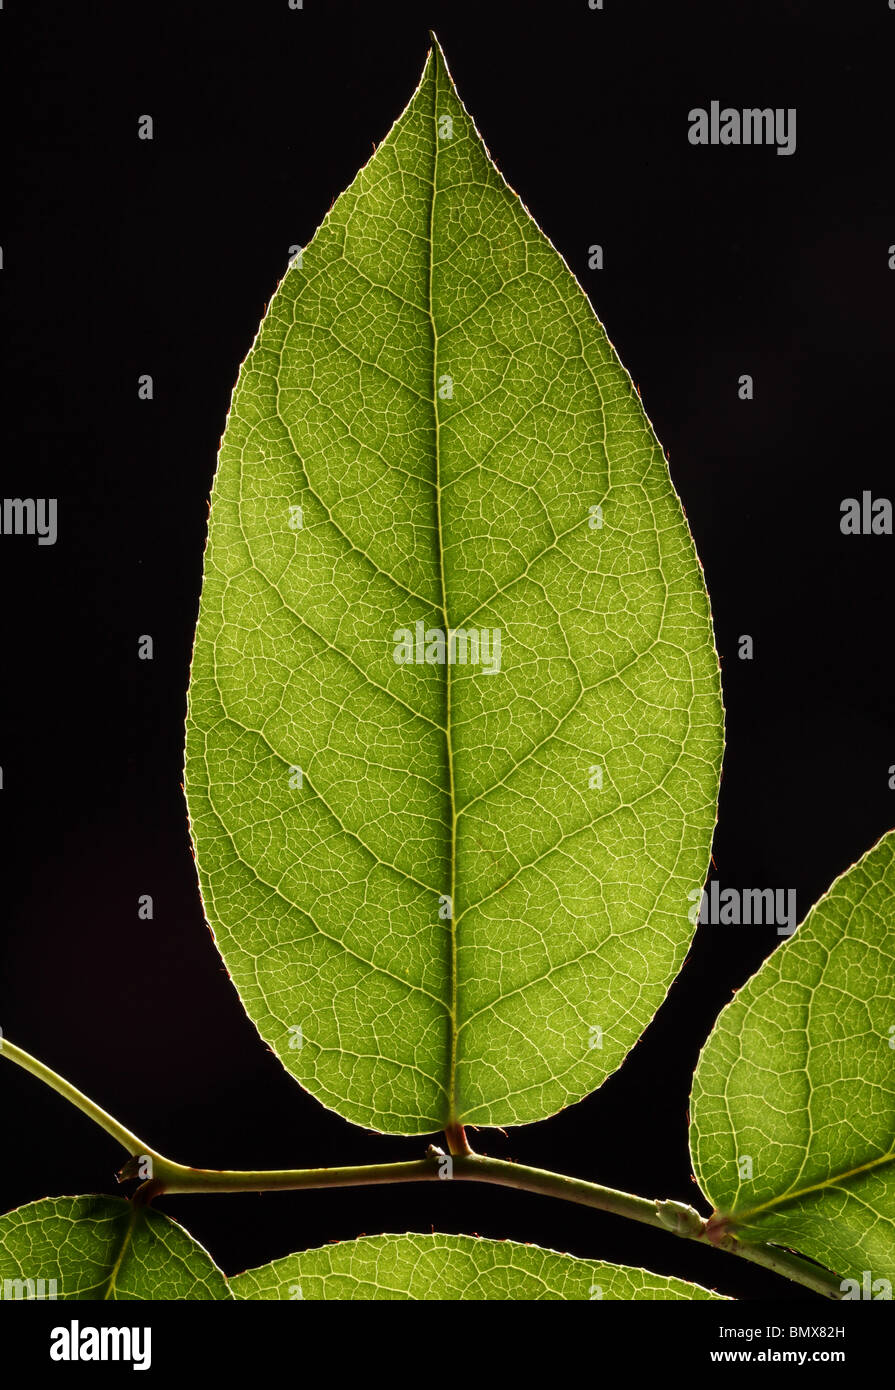 Green plant leaf on a branch, black background - Stock Image